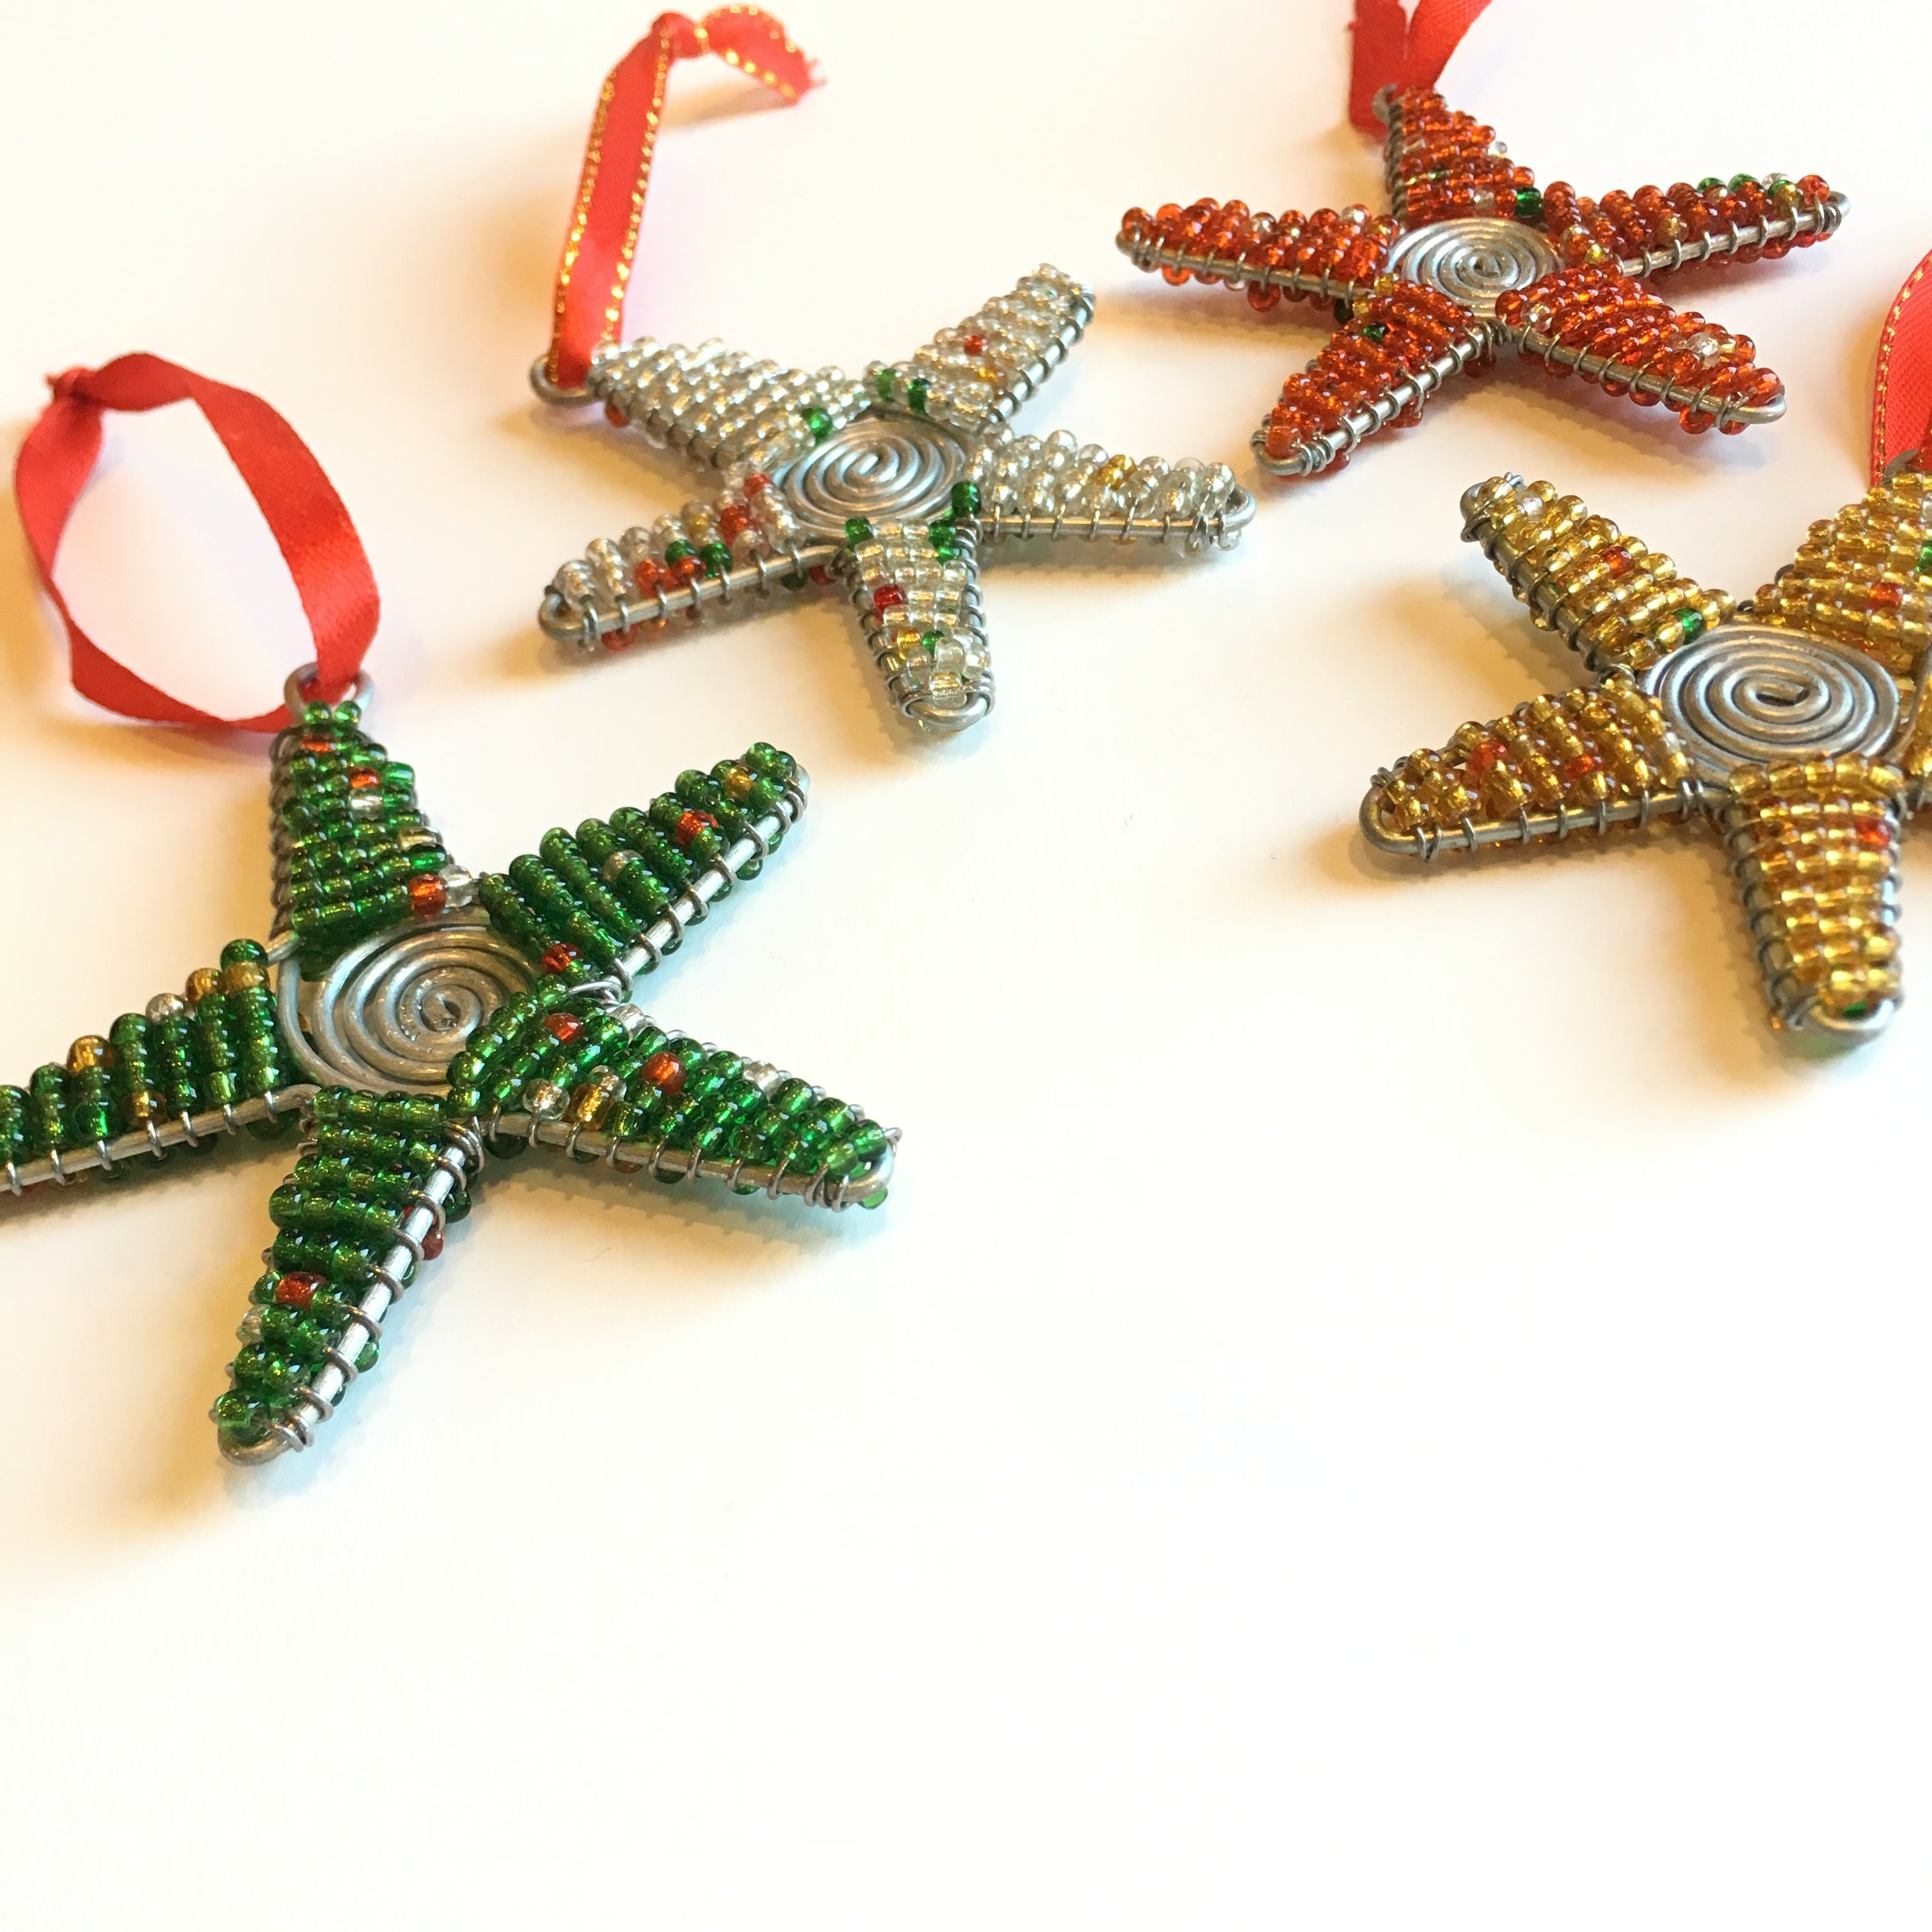 Swirled Glass Bead Star Ornament Collection